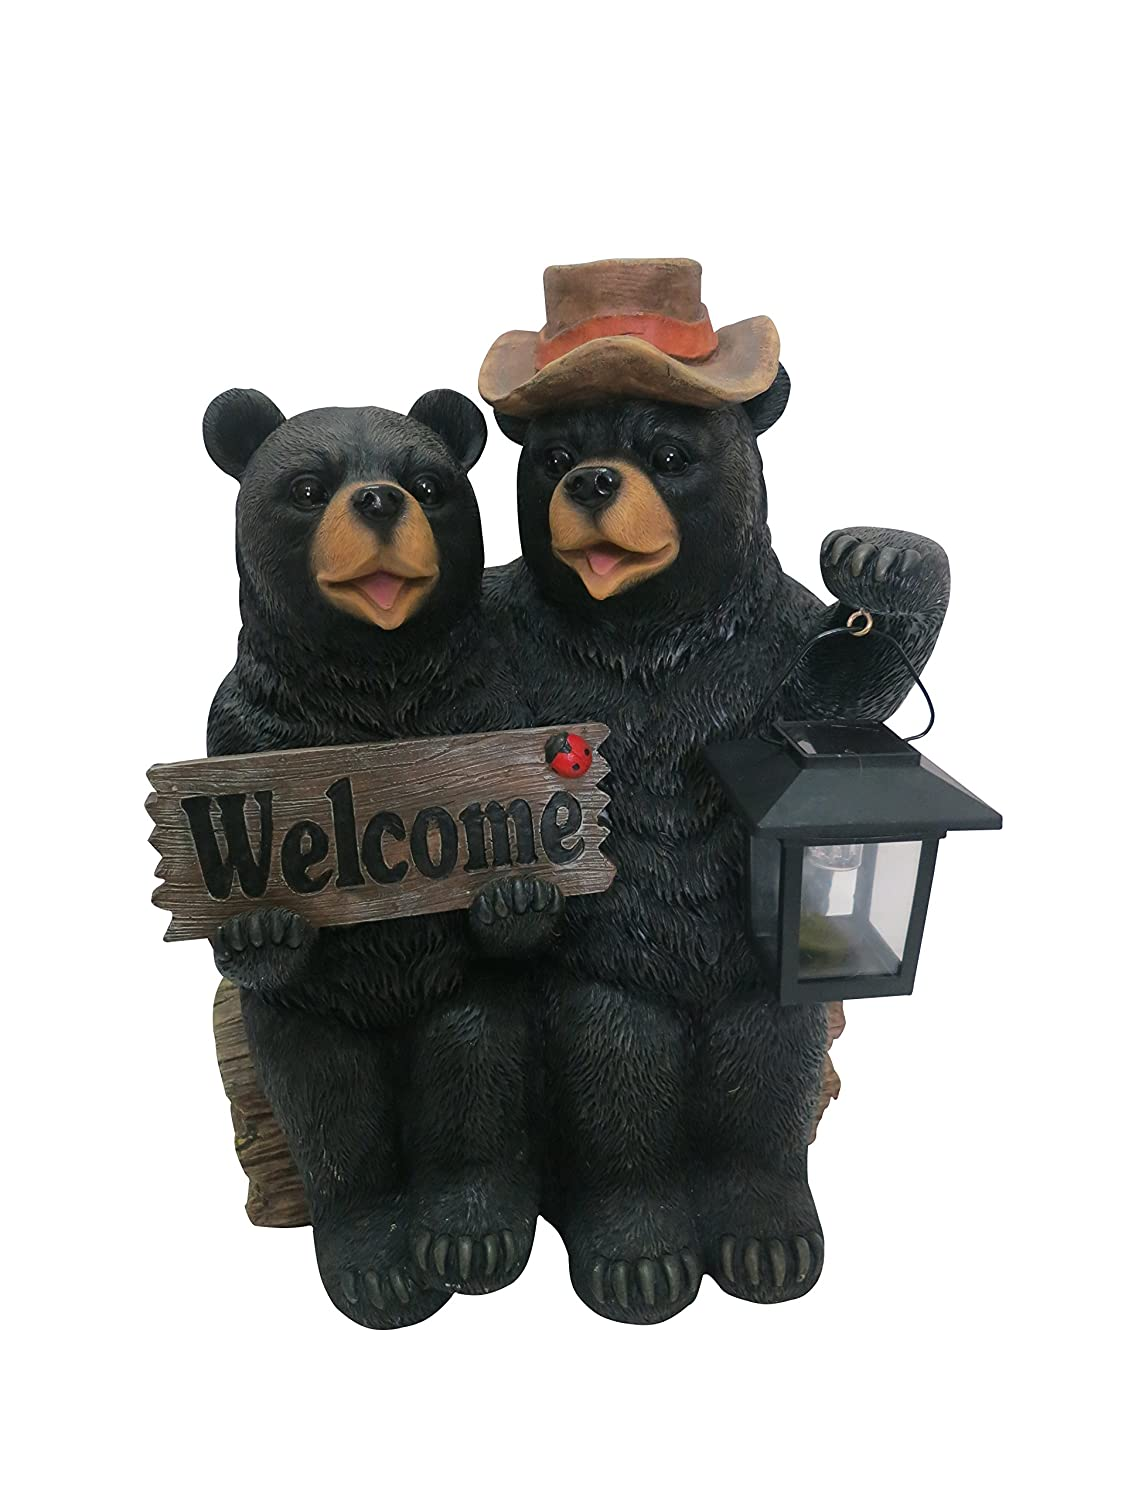 Alpine Corporation Bear Couple with Lantern and Welcome Sign Statue with Solar LED Lights - Outdoor Decor for Garden, Patio, Deck, Porch - Yard Art Decoration - 15 Inches Tall